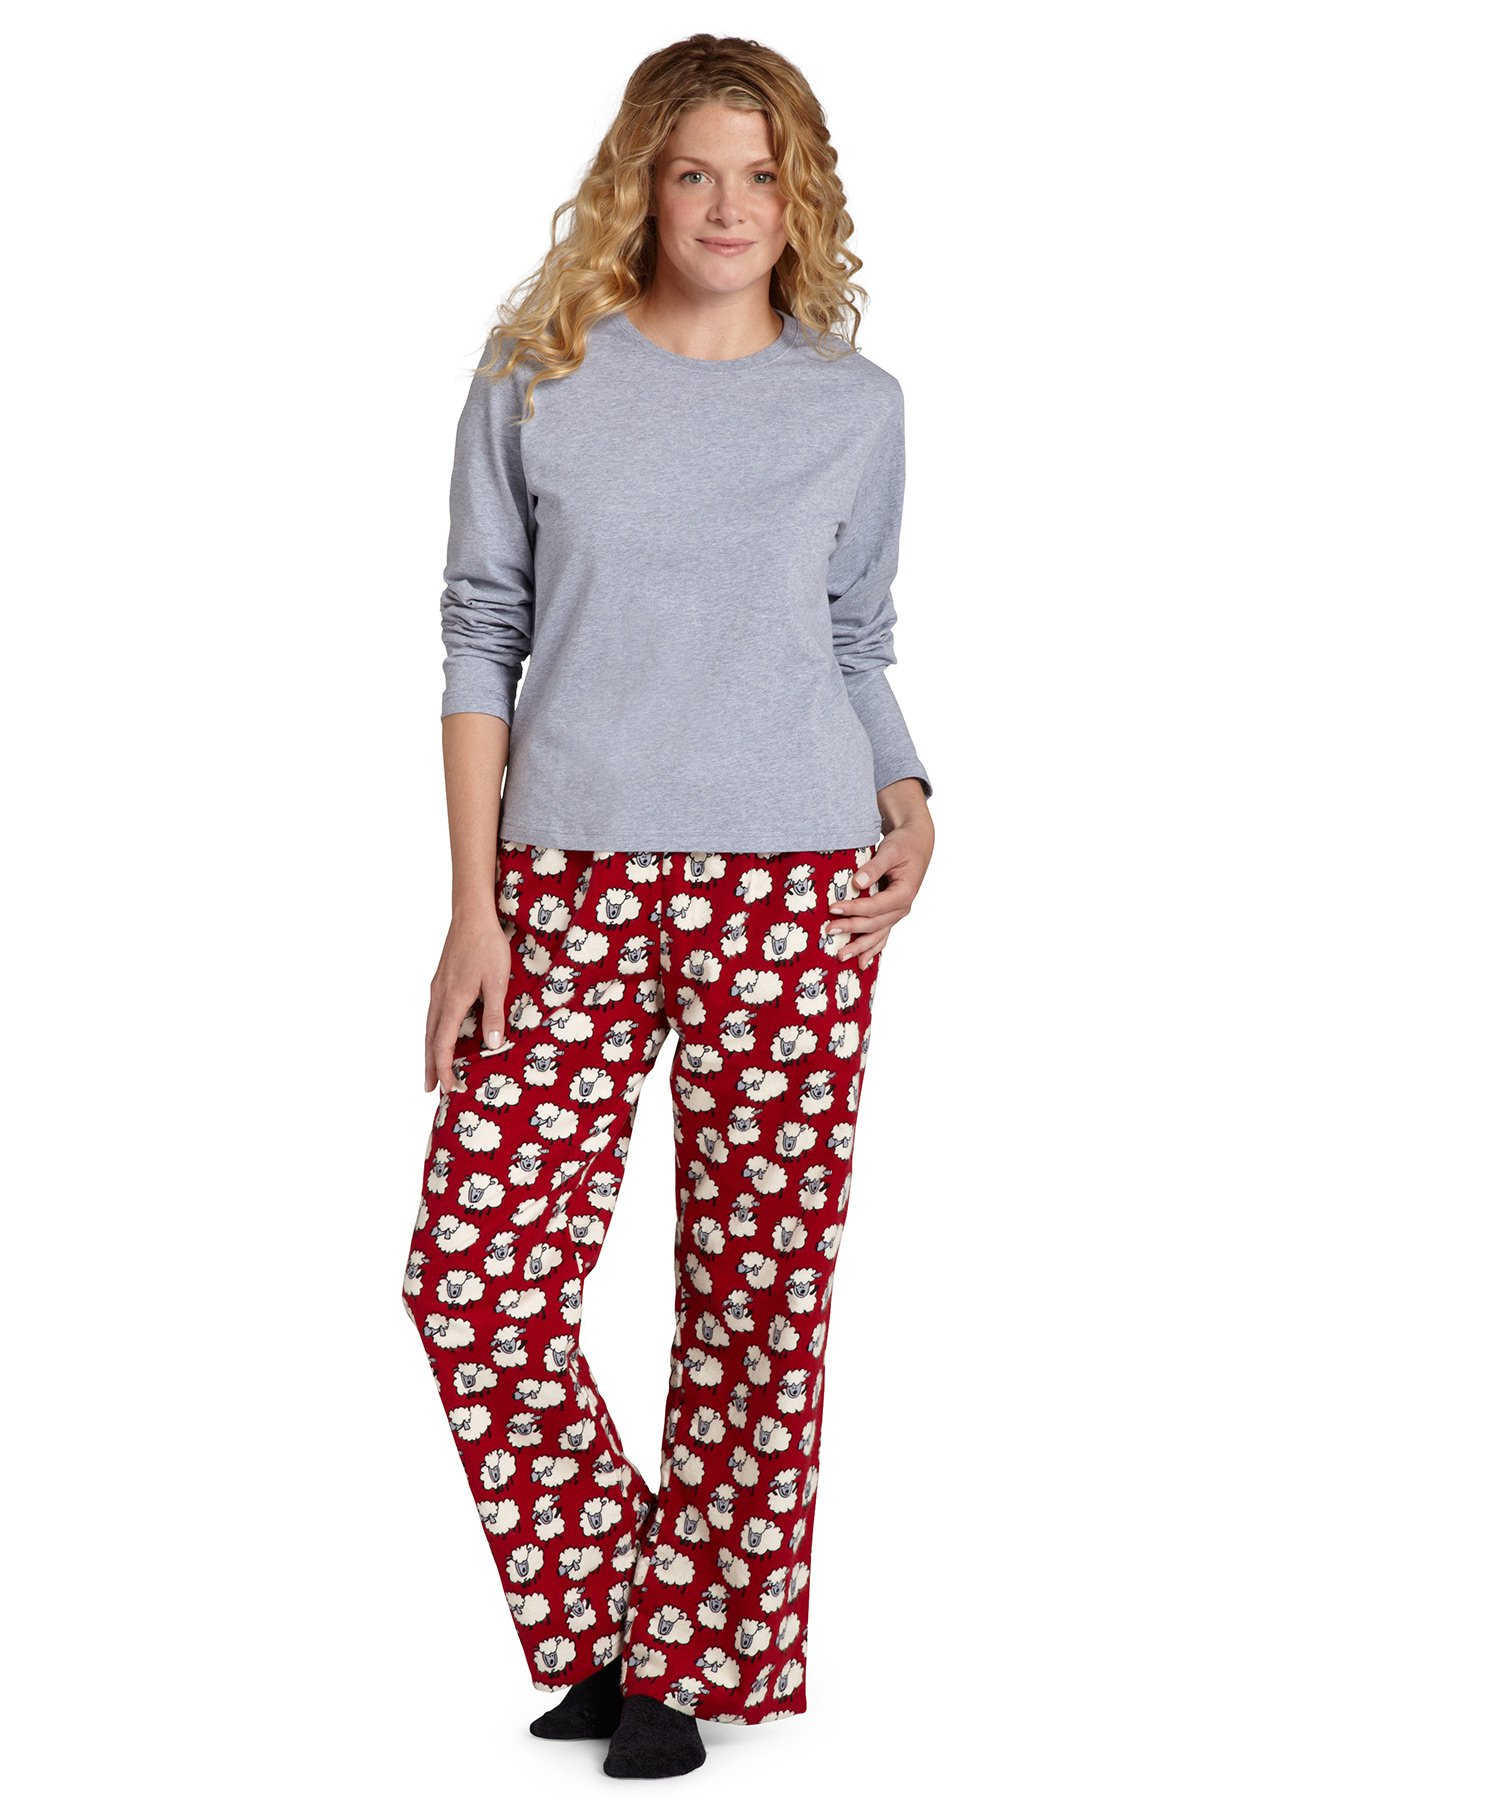 pajamas for women womenu0027s flannel pajama set by woolrich® the original outdoor clothing  company THMRADG